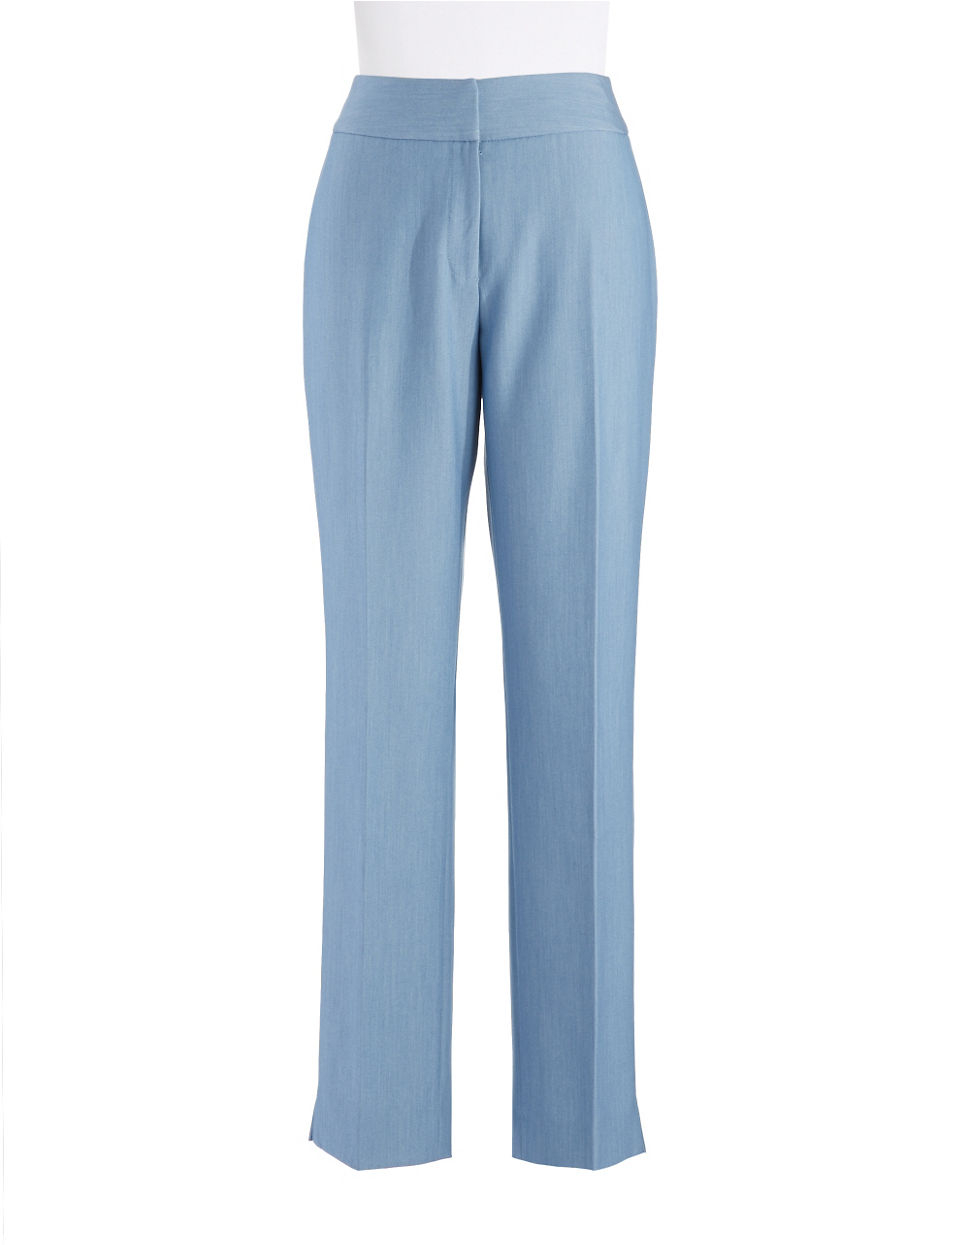 Tahari by arthur s levine chambray pants in blue light for Chambray jeans